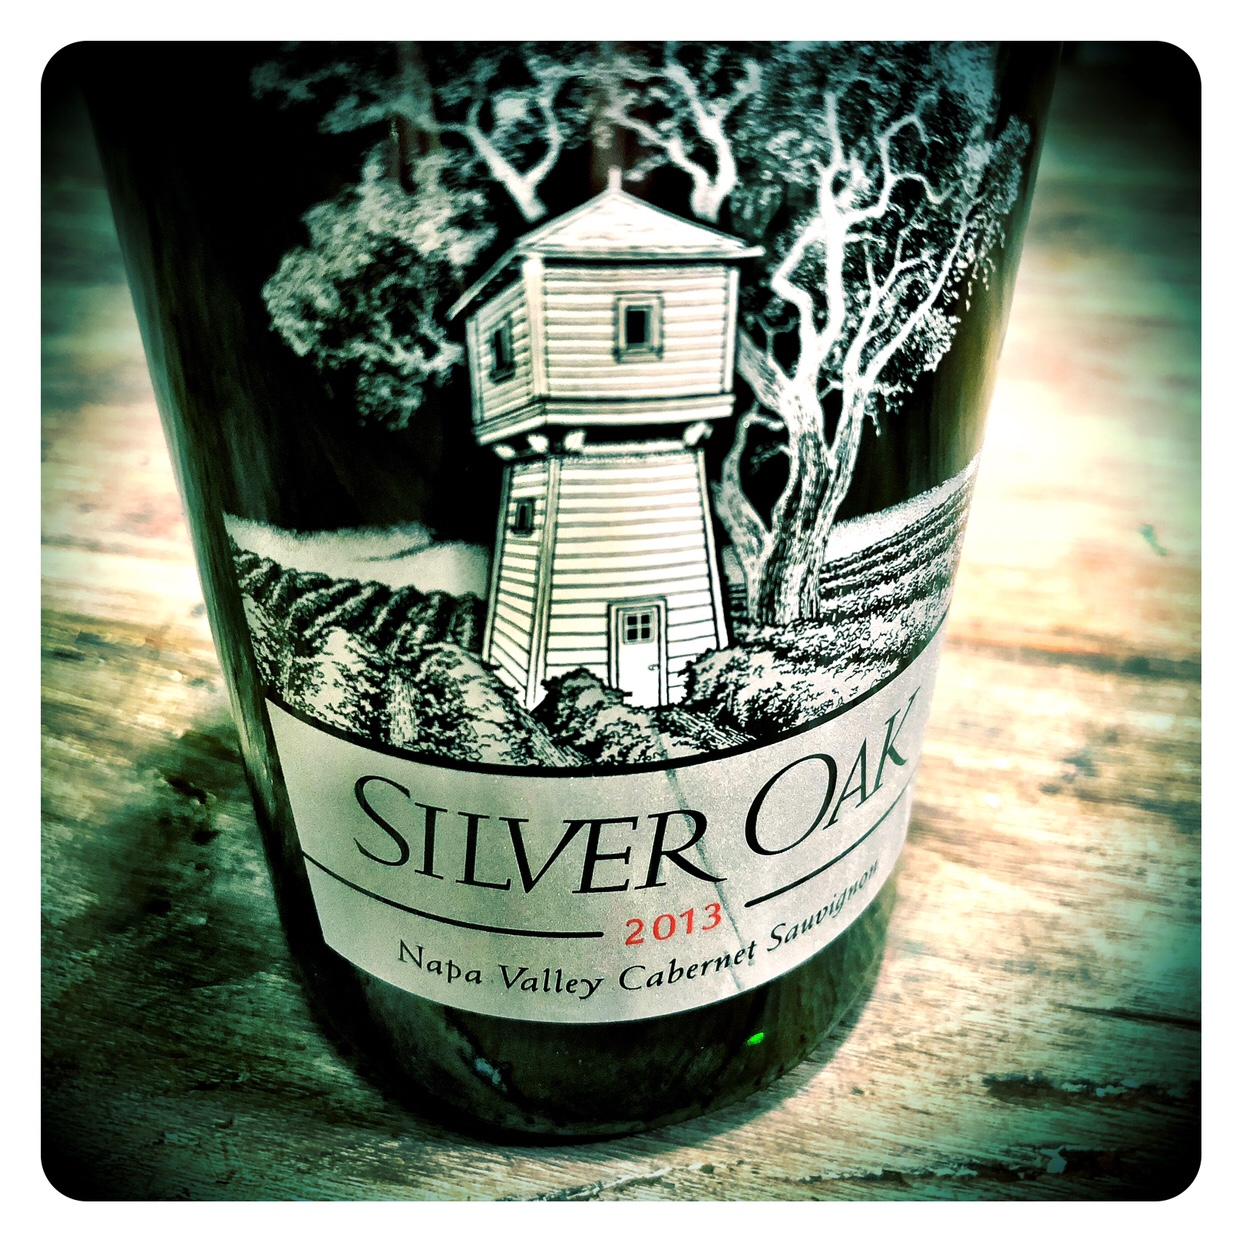 Silver Oak Napa Valley Cabernet Sauvignon – The Long Awaited Iconic 2013 Vintage is Finally Released…